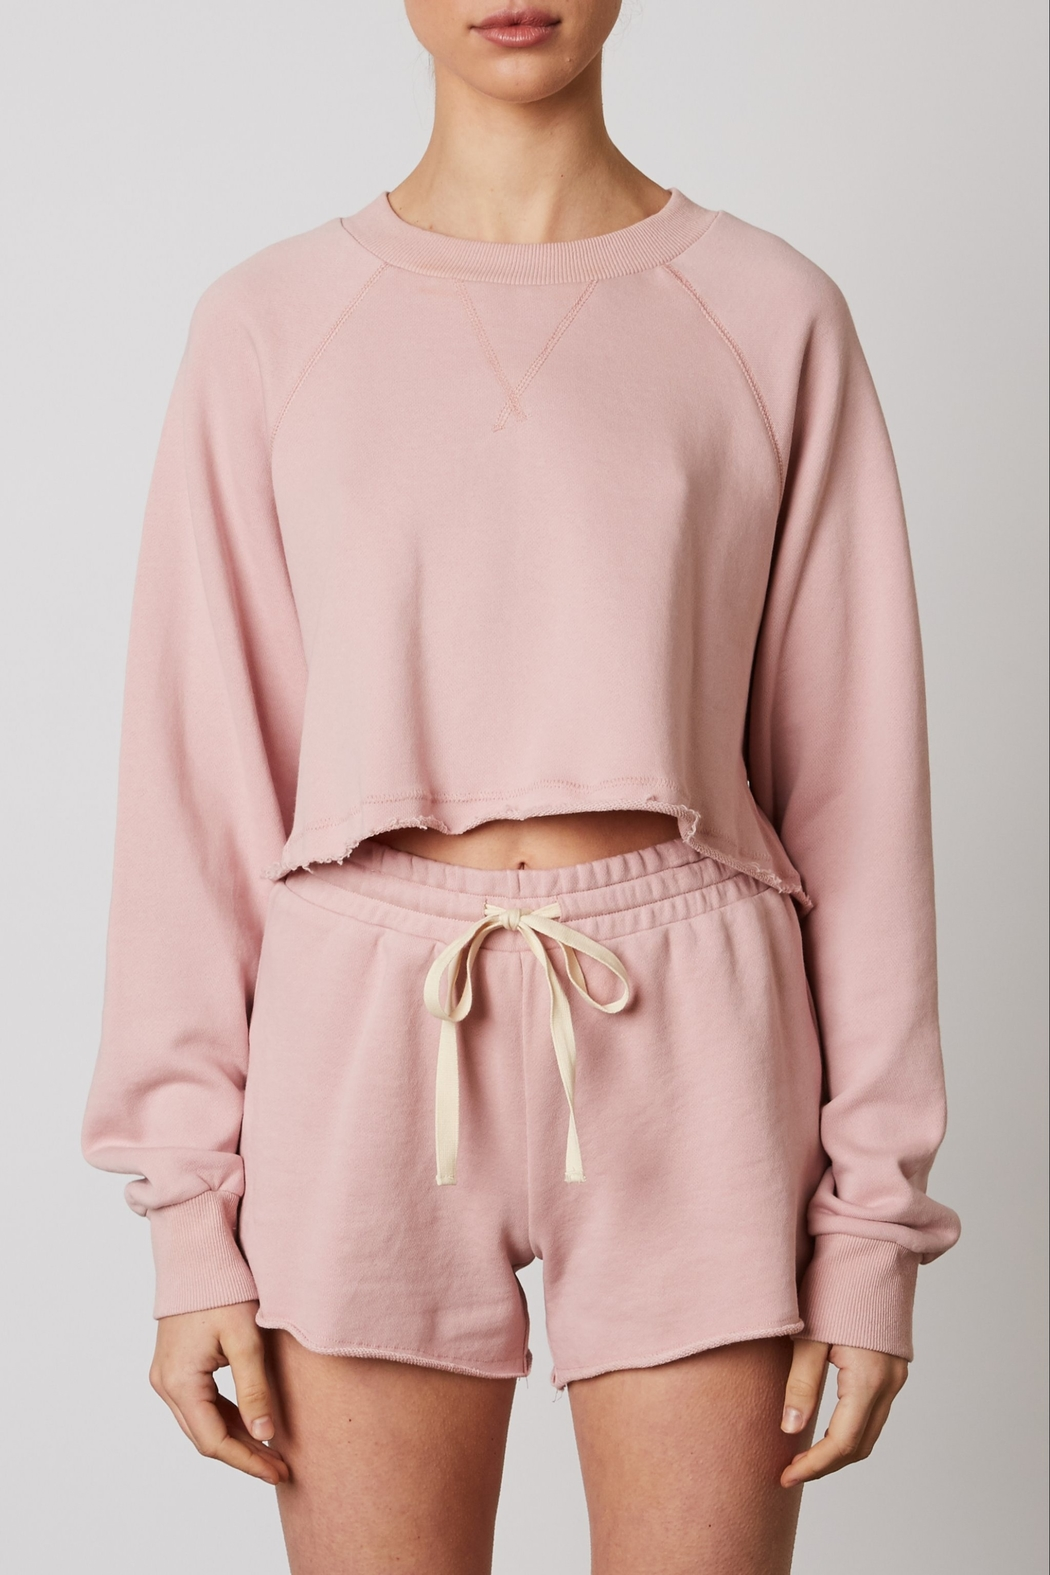 NIA Vintage Cropped Pullover - Main Image